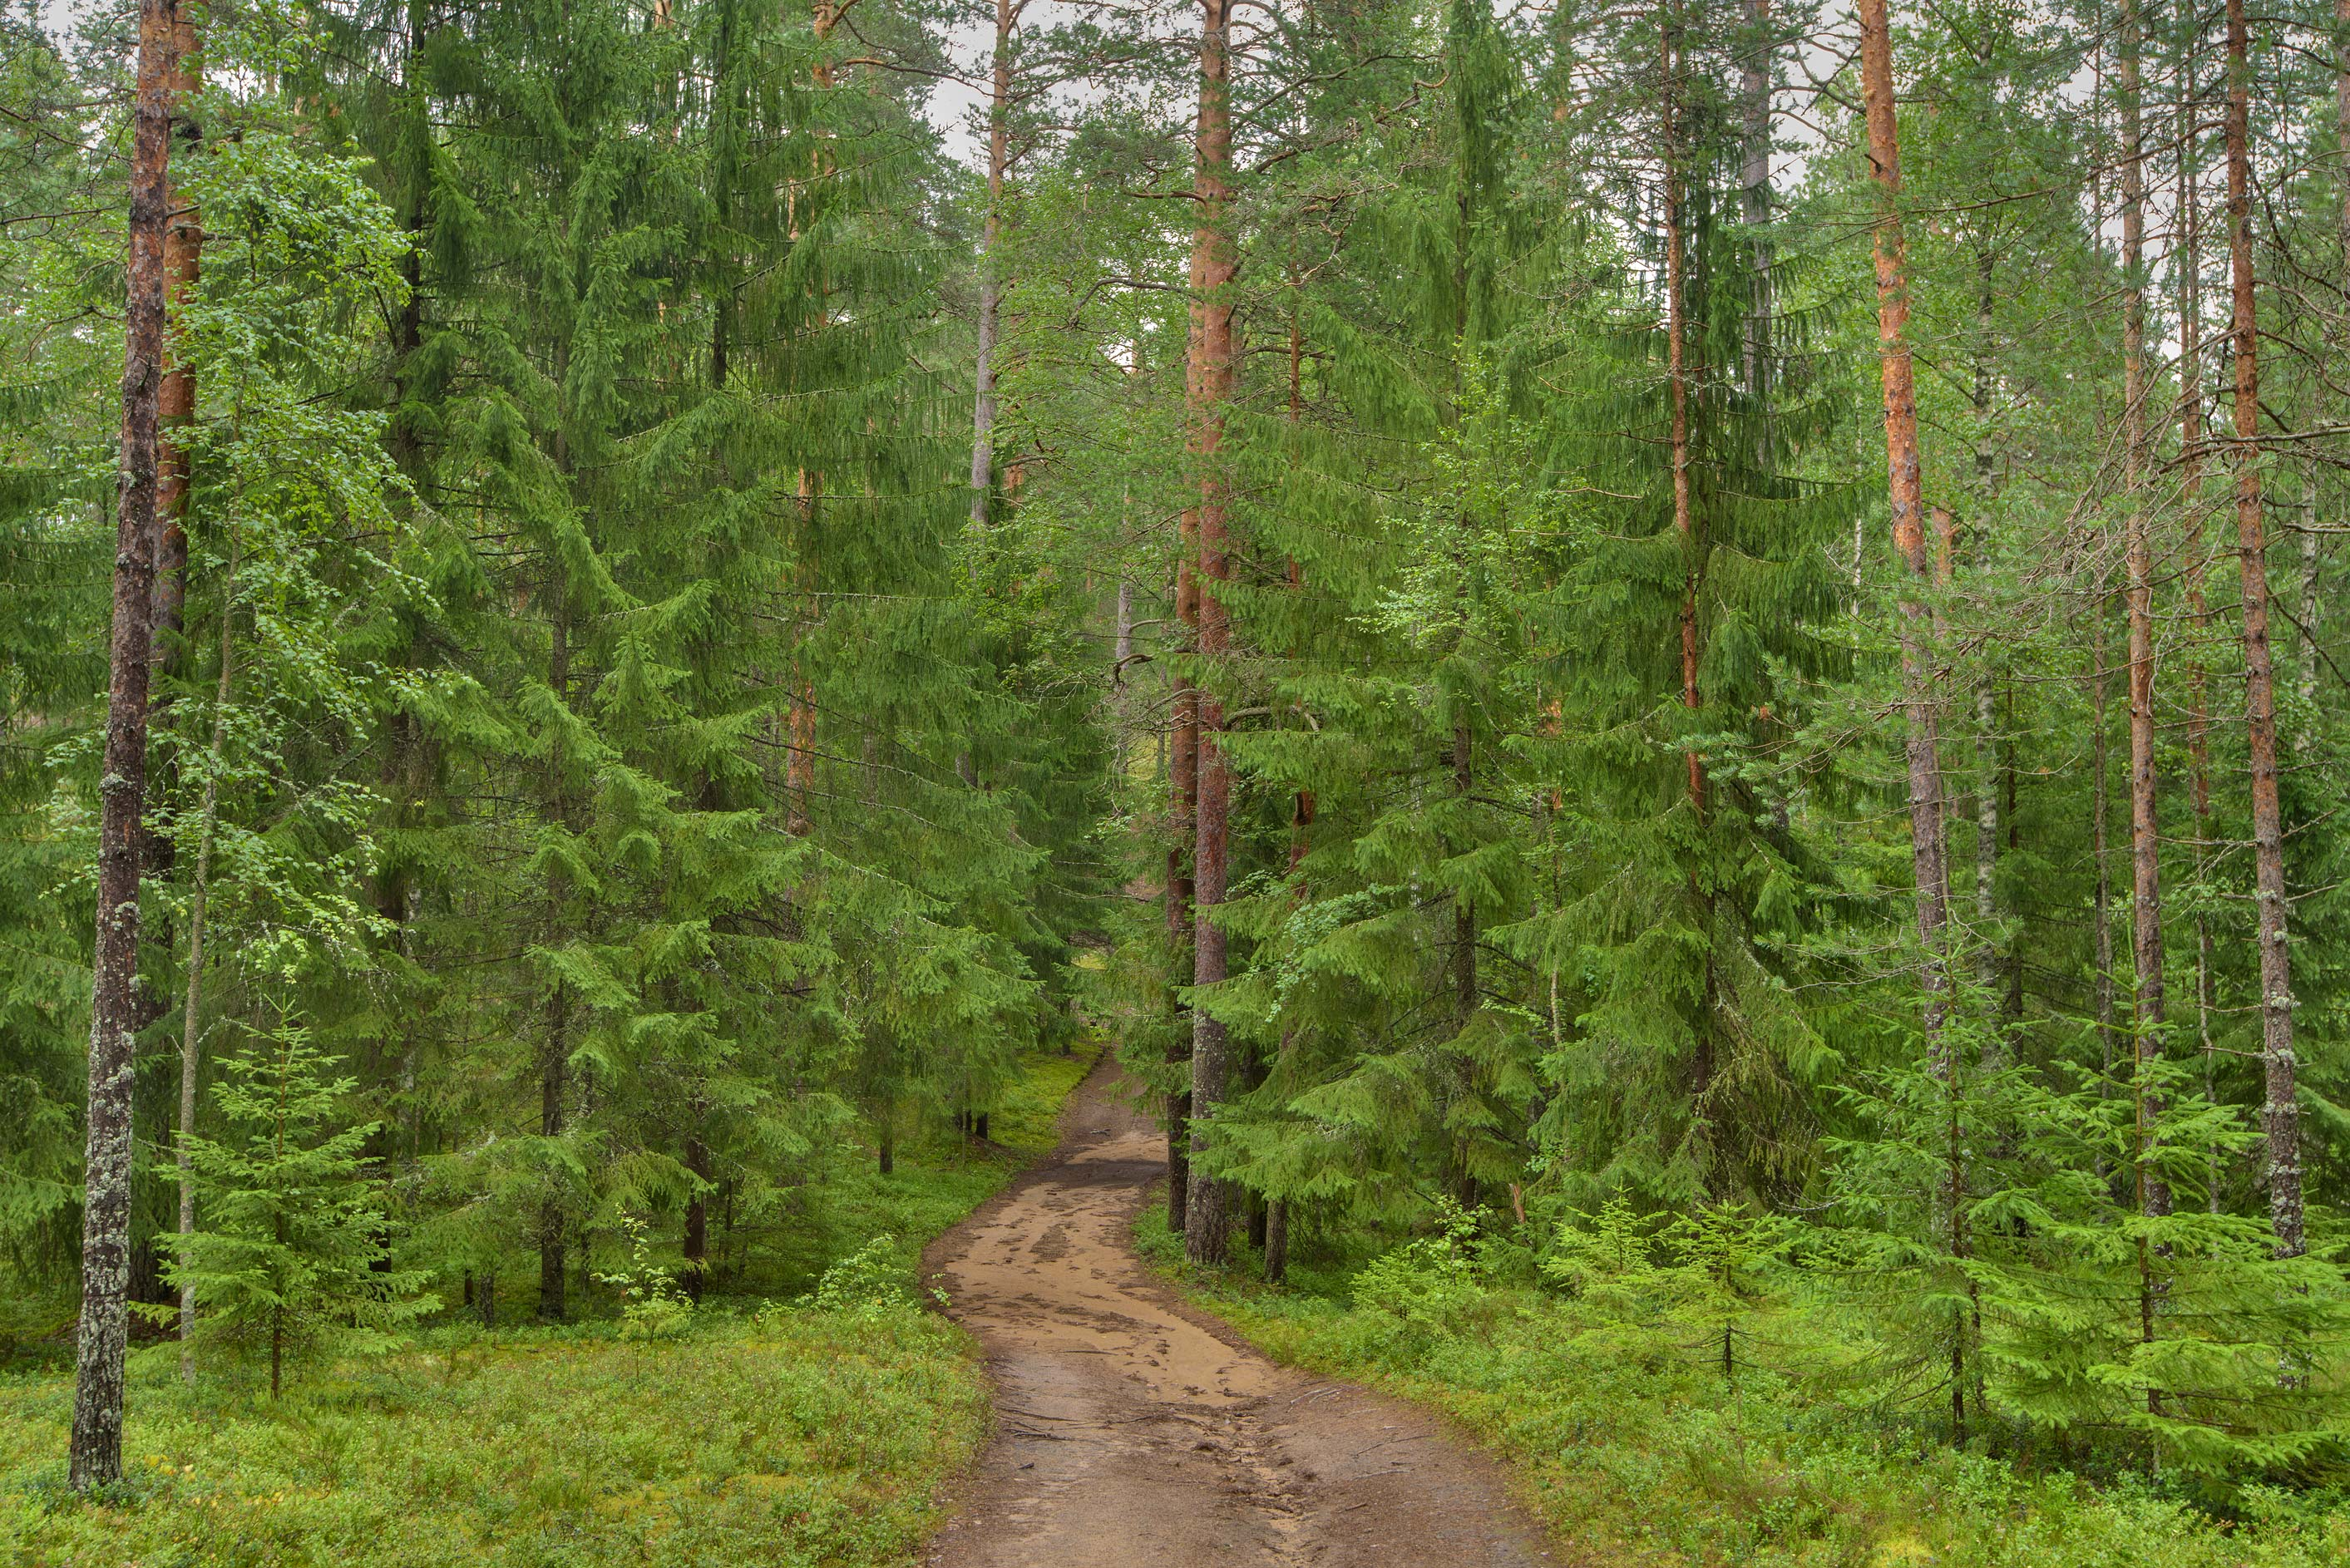 Road in a spruce forest near Orekhovo, 40 miles north from St.Petersburg. Russia